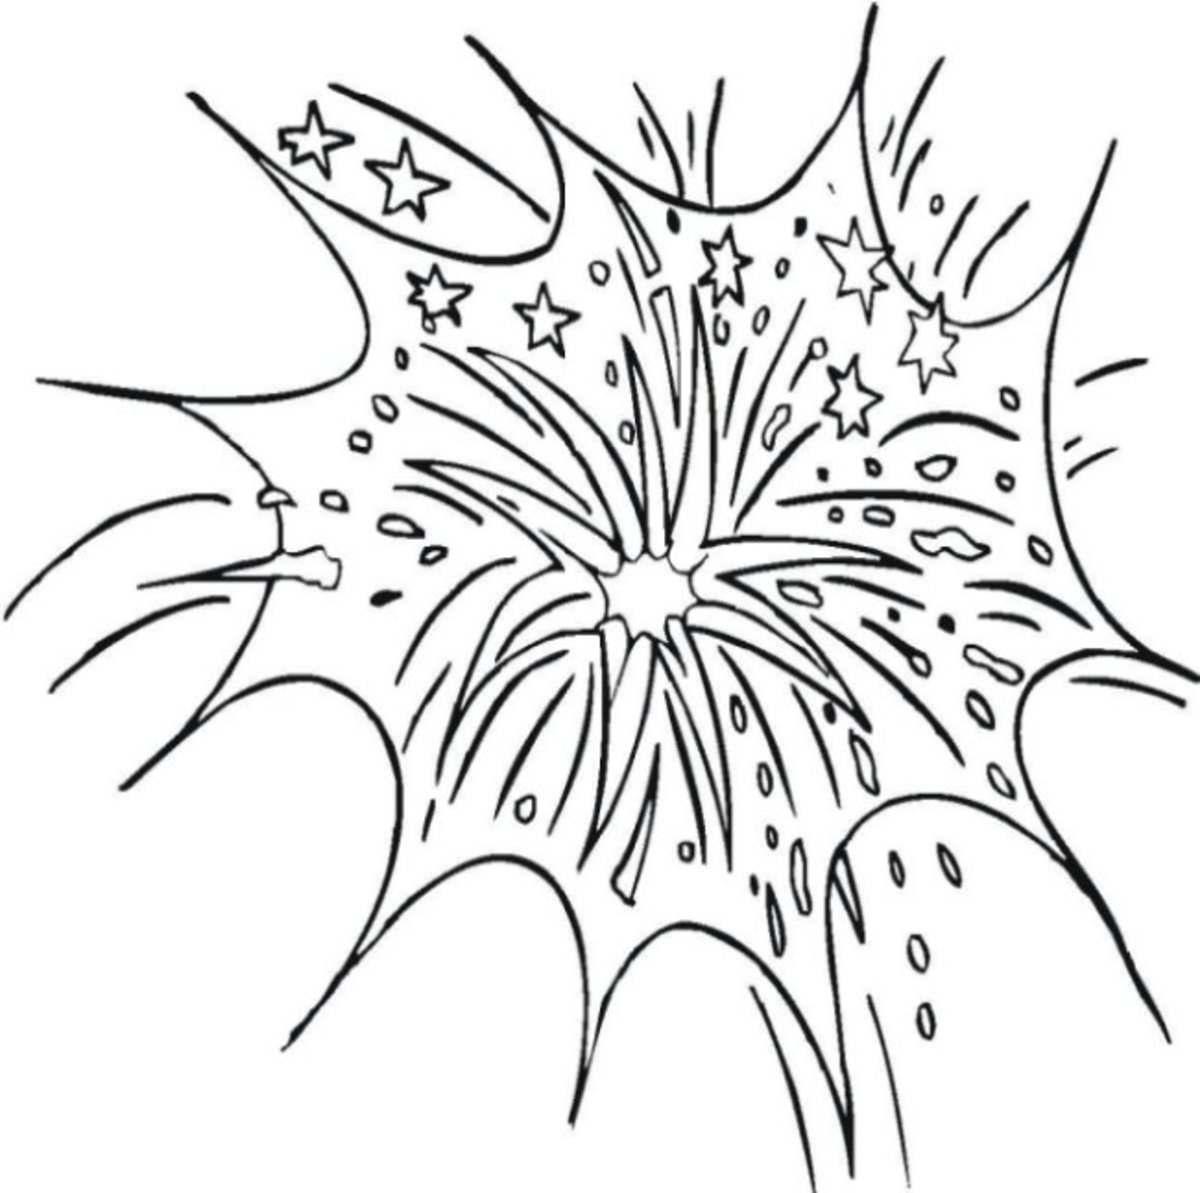 Fireworks Skyburst - Patriotic America Kids Coloring Pages and Free Colouring Pictures to Print